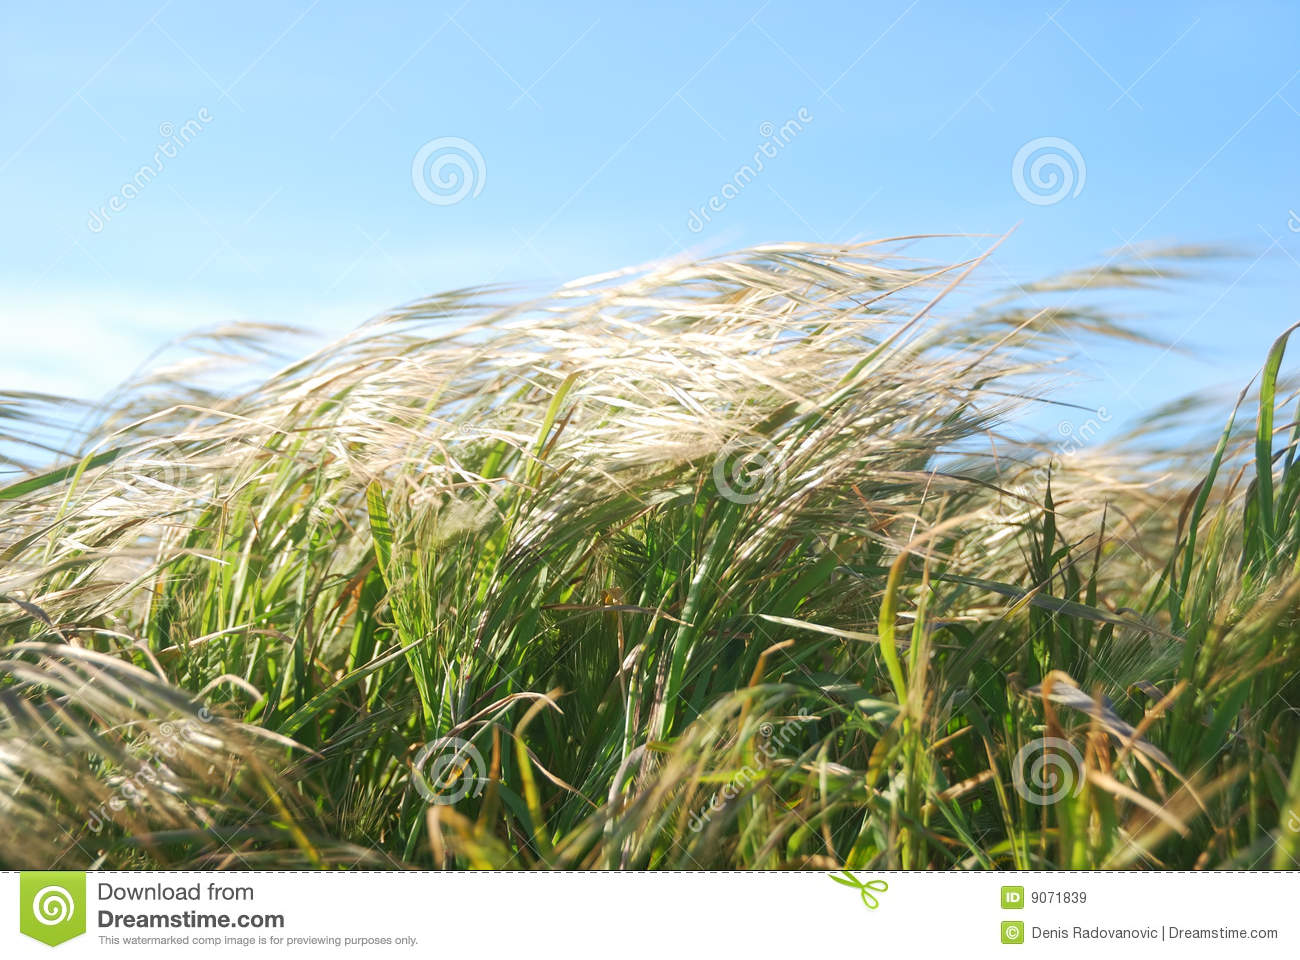 Royalty Free Stock Images Windy Day Grass Image9071839 on Windy Days Clipart